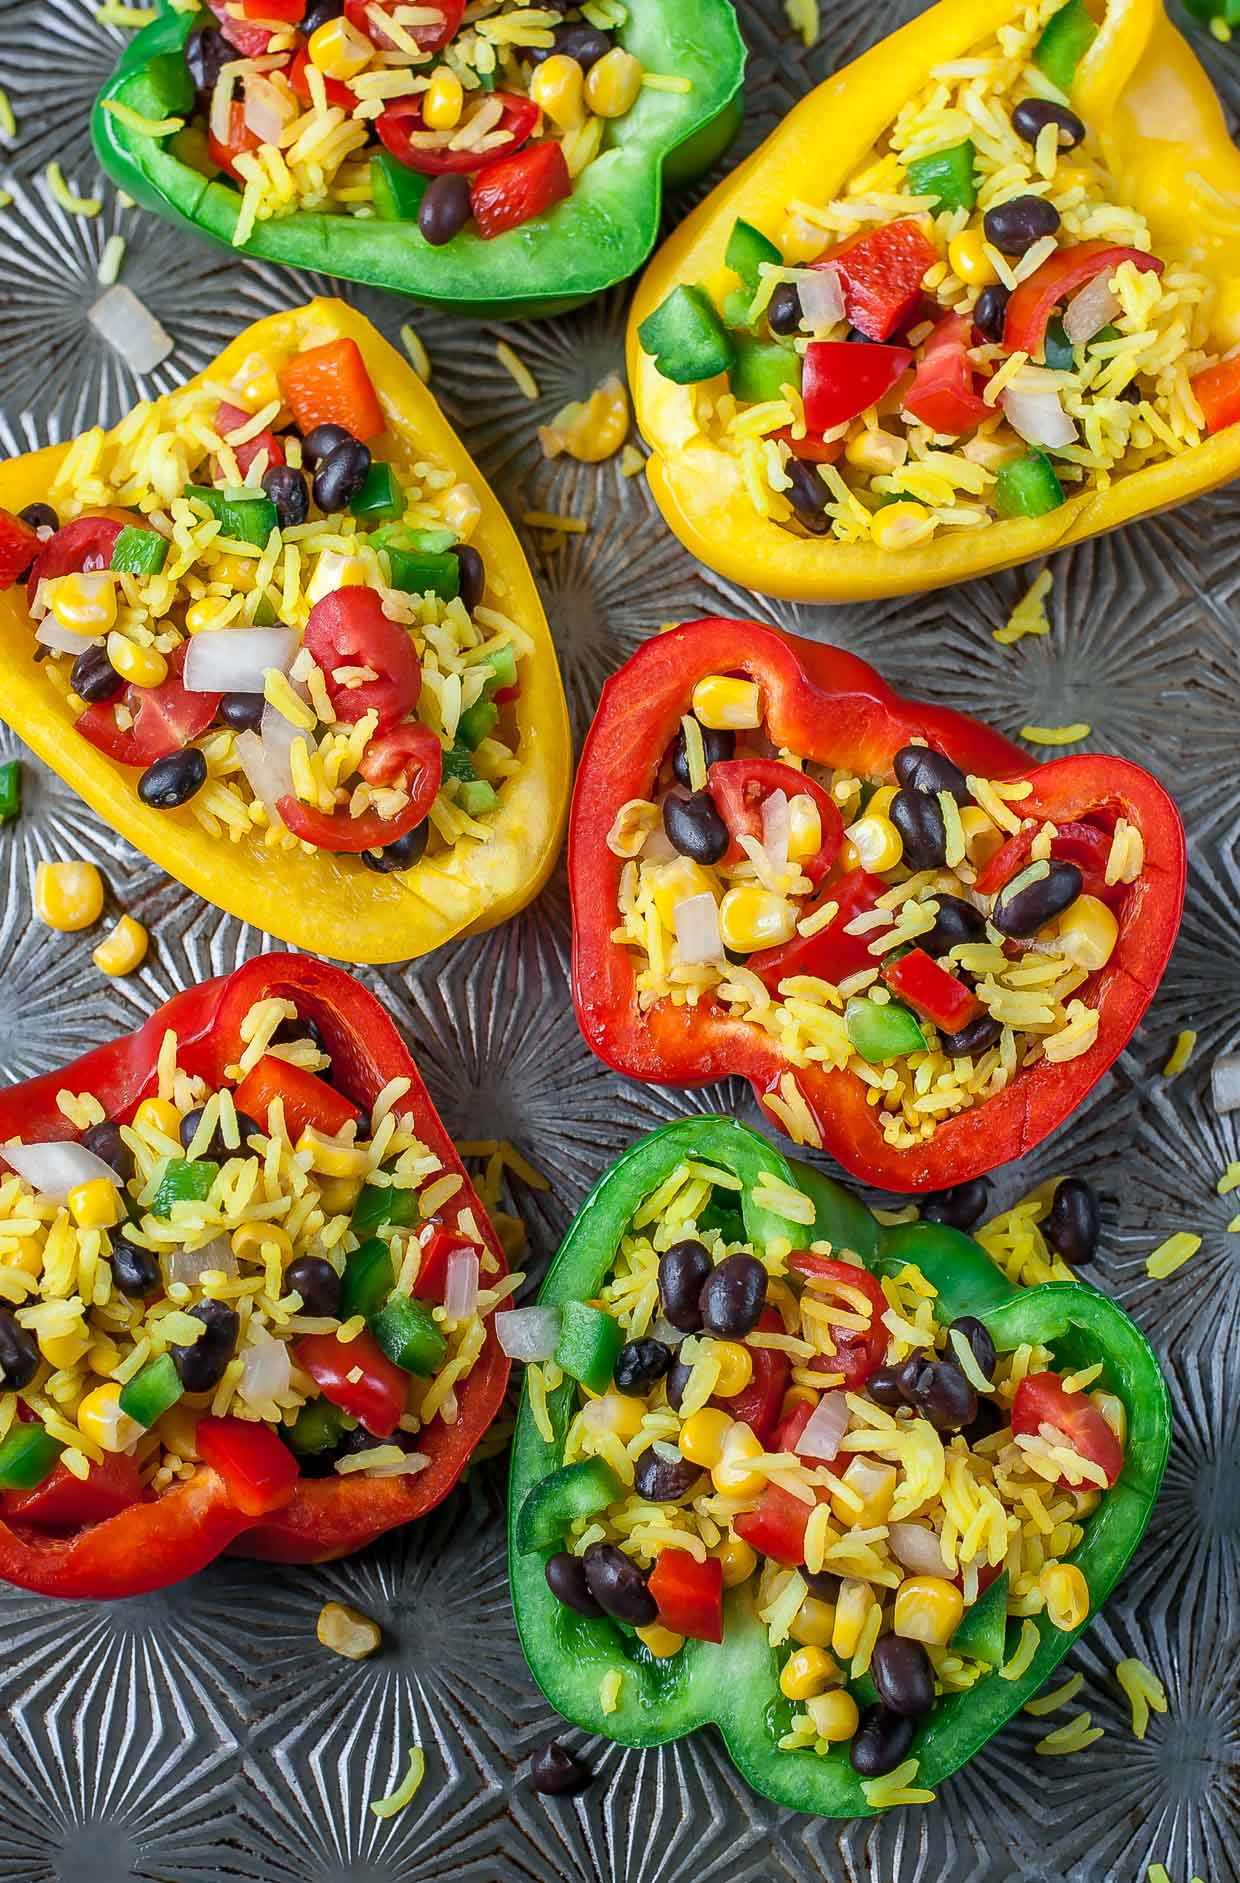 Healthy Stuffed Peppers with veggies and rice